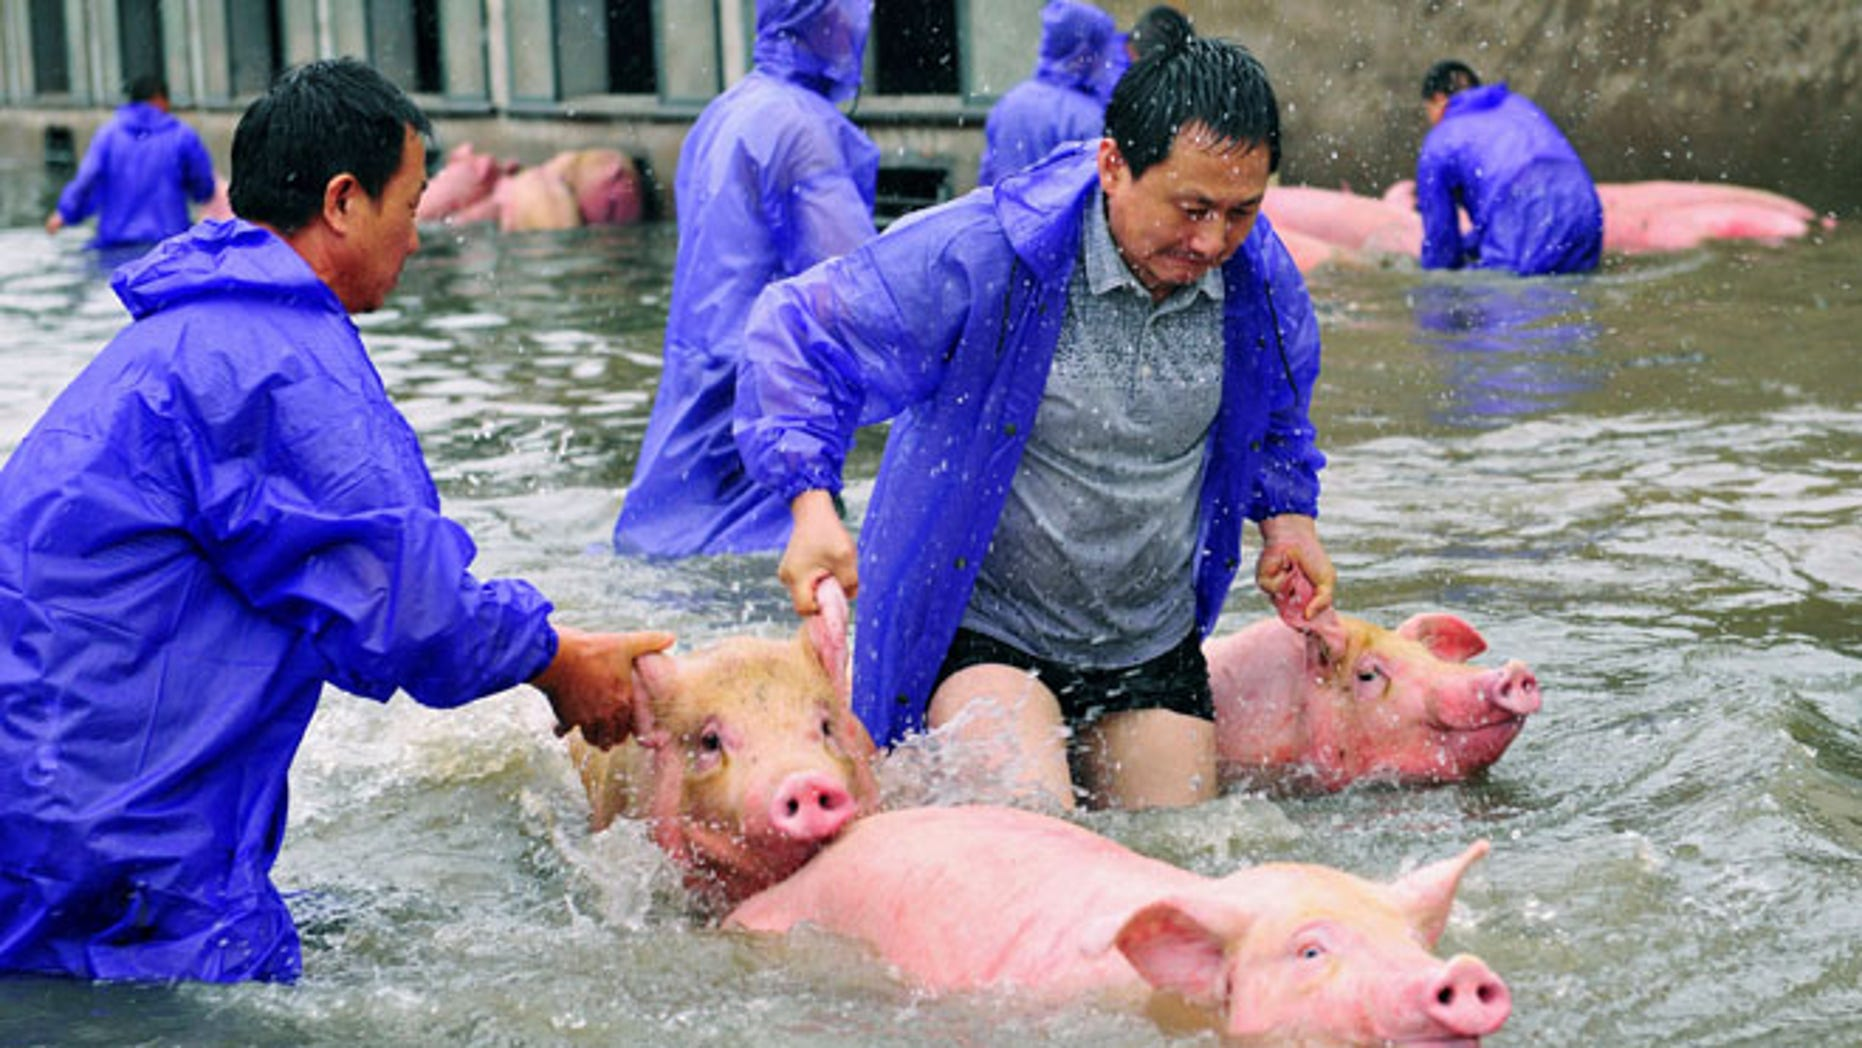 Employees save pigs from a flooded farm in Lu'an, Anhui Province, China